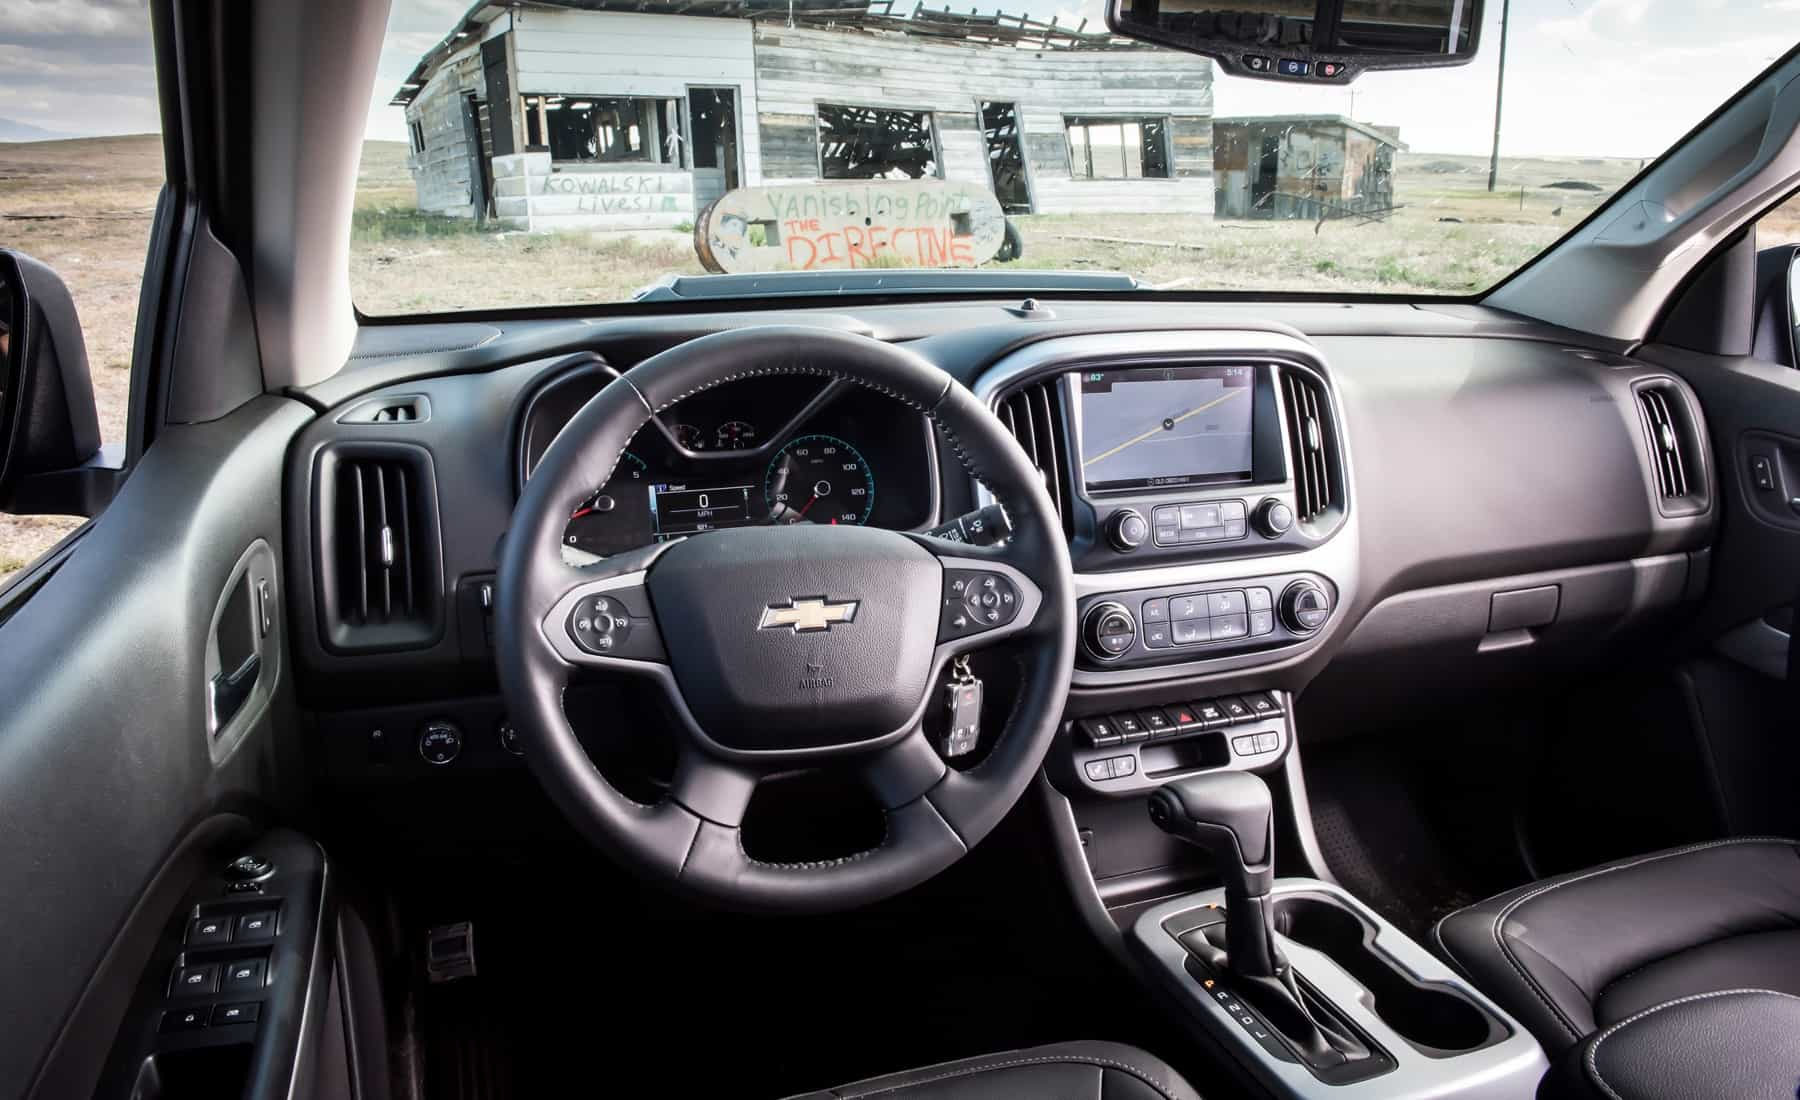 2017 Chevrolet Colorado ZR2 Crew Cab Diesel Interior Cockpit And Dashboard (Photo 7 of 16)